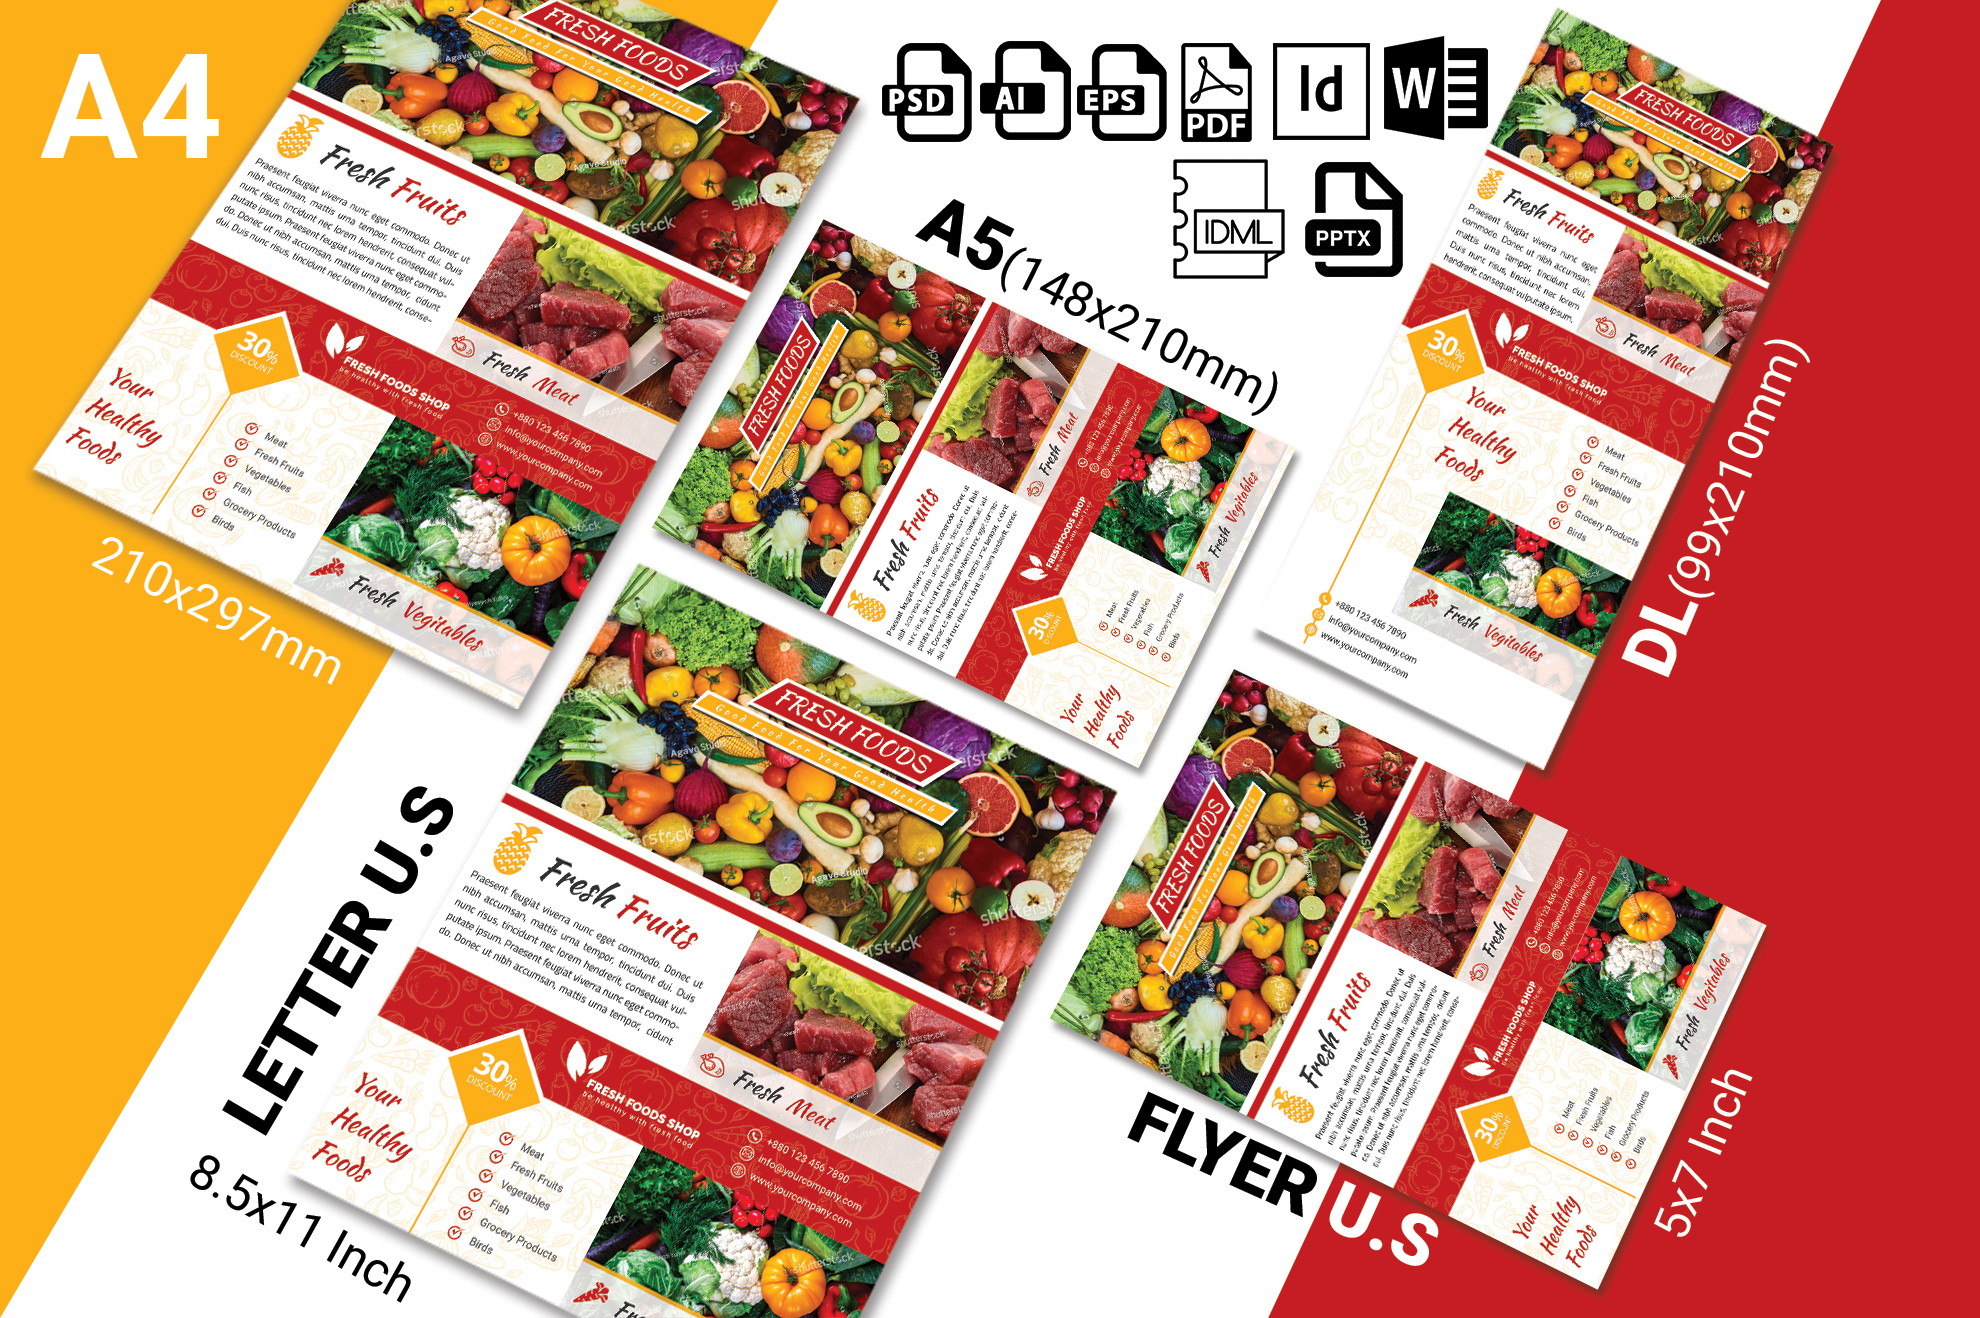 Fresh Food Grocery Shop Flyer Vol-01 example image 2